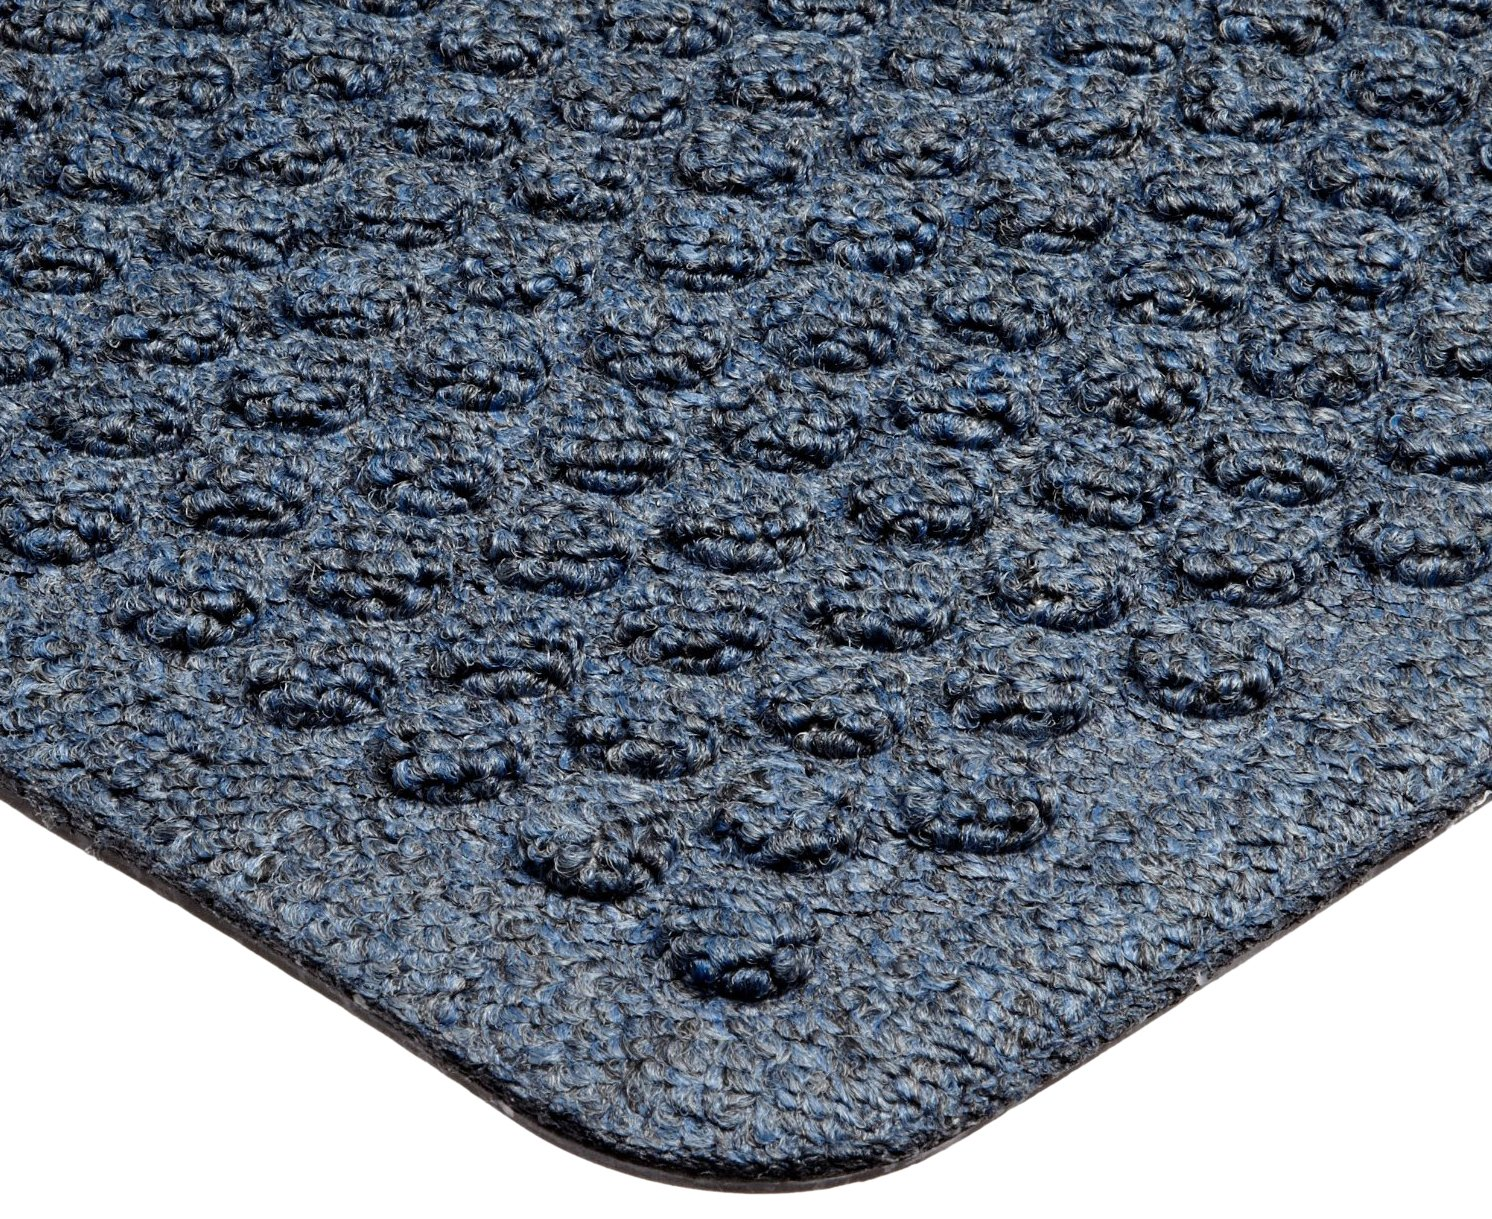 Notrax 150 Aqua Trap Entrance Mat, for Main Entranceways and Heavy Traffic Areas, 4' Width x 6' Length x 3/8'' Thickness, Slate Blue